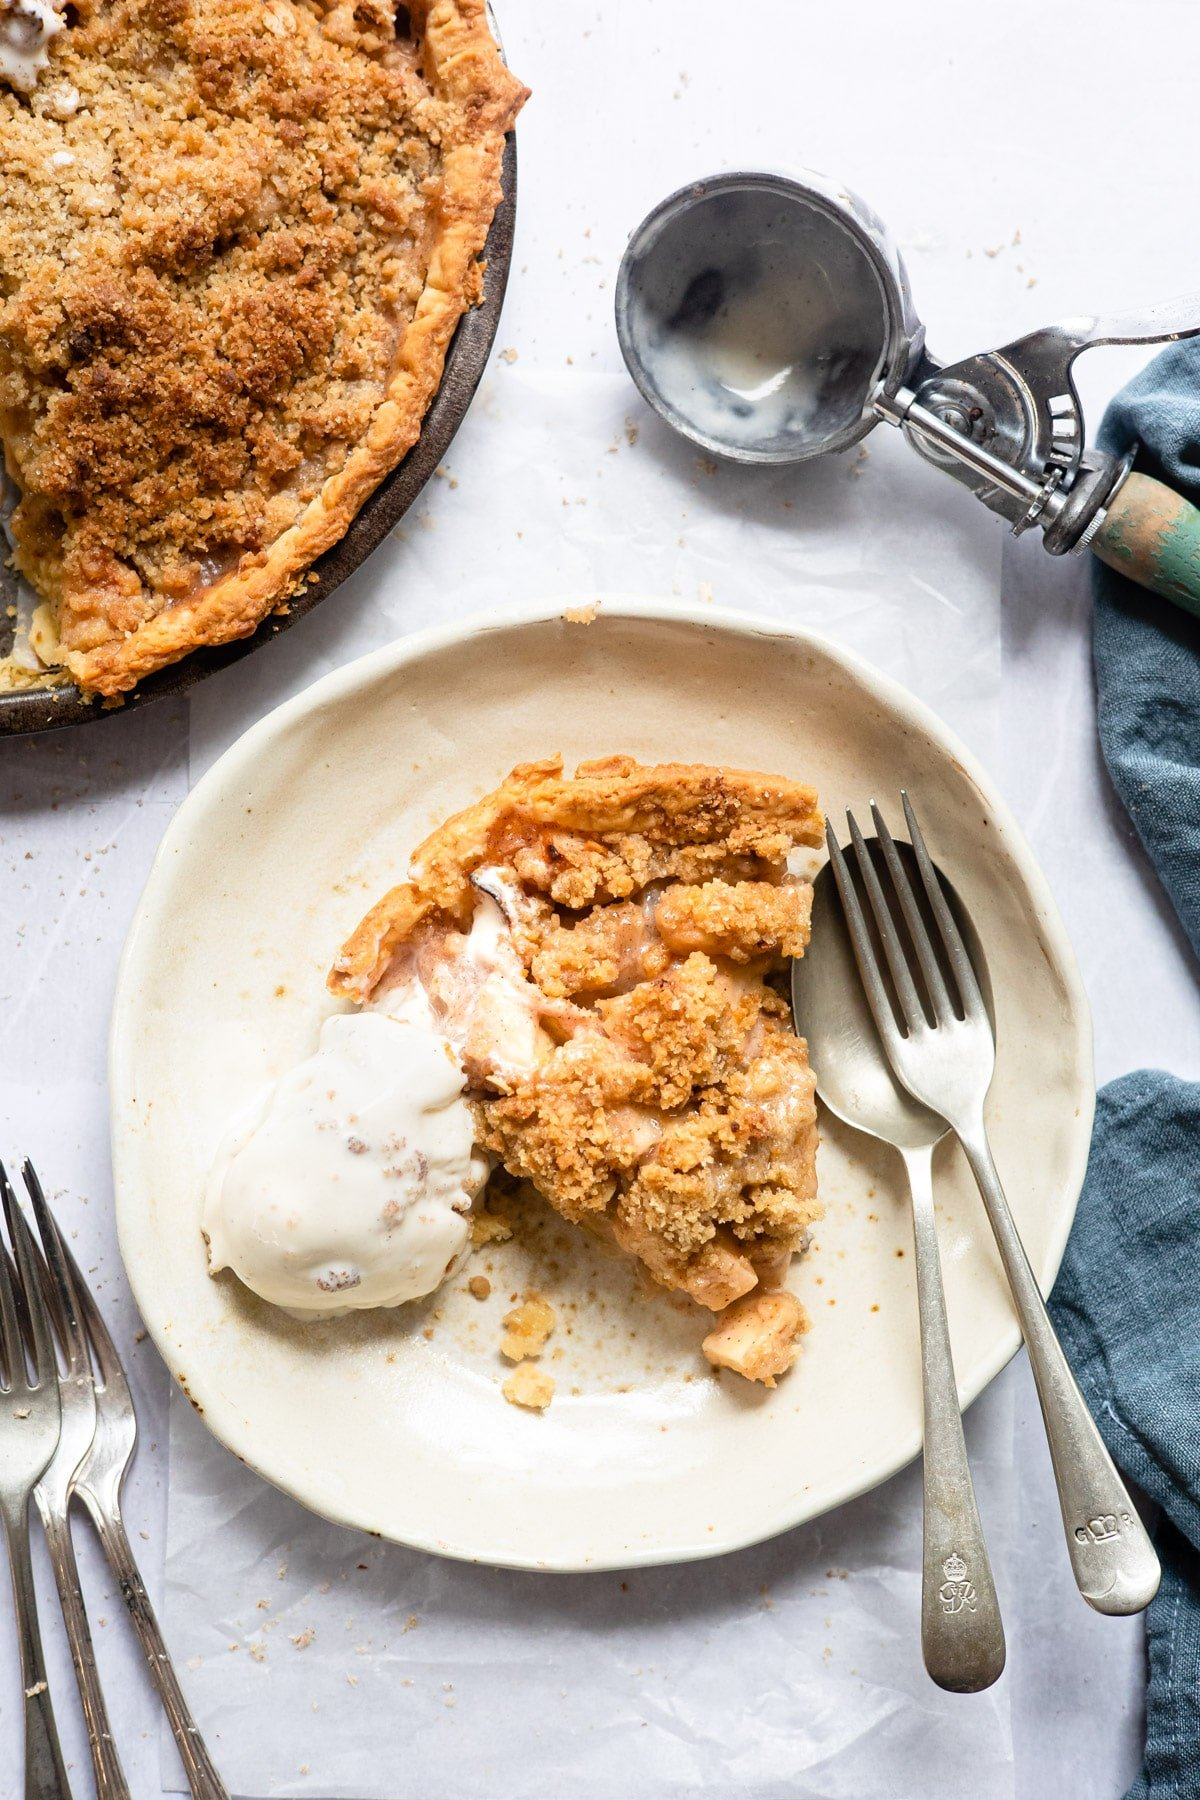 Slice of apple crumb pie next to a scoop of vanilla ice cream on a plate.